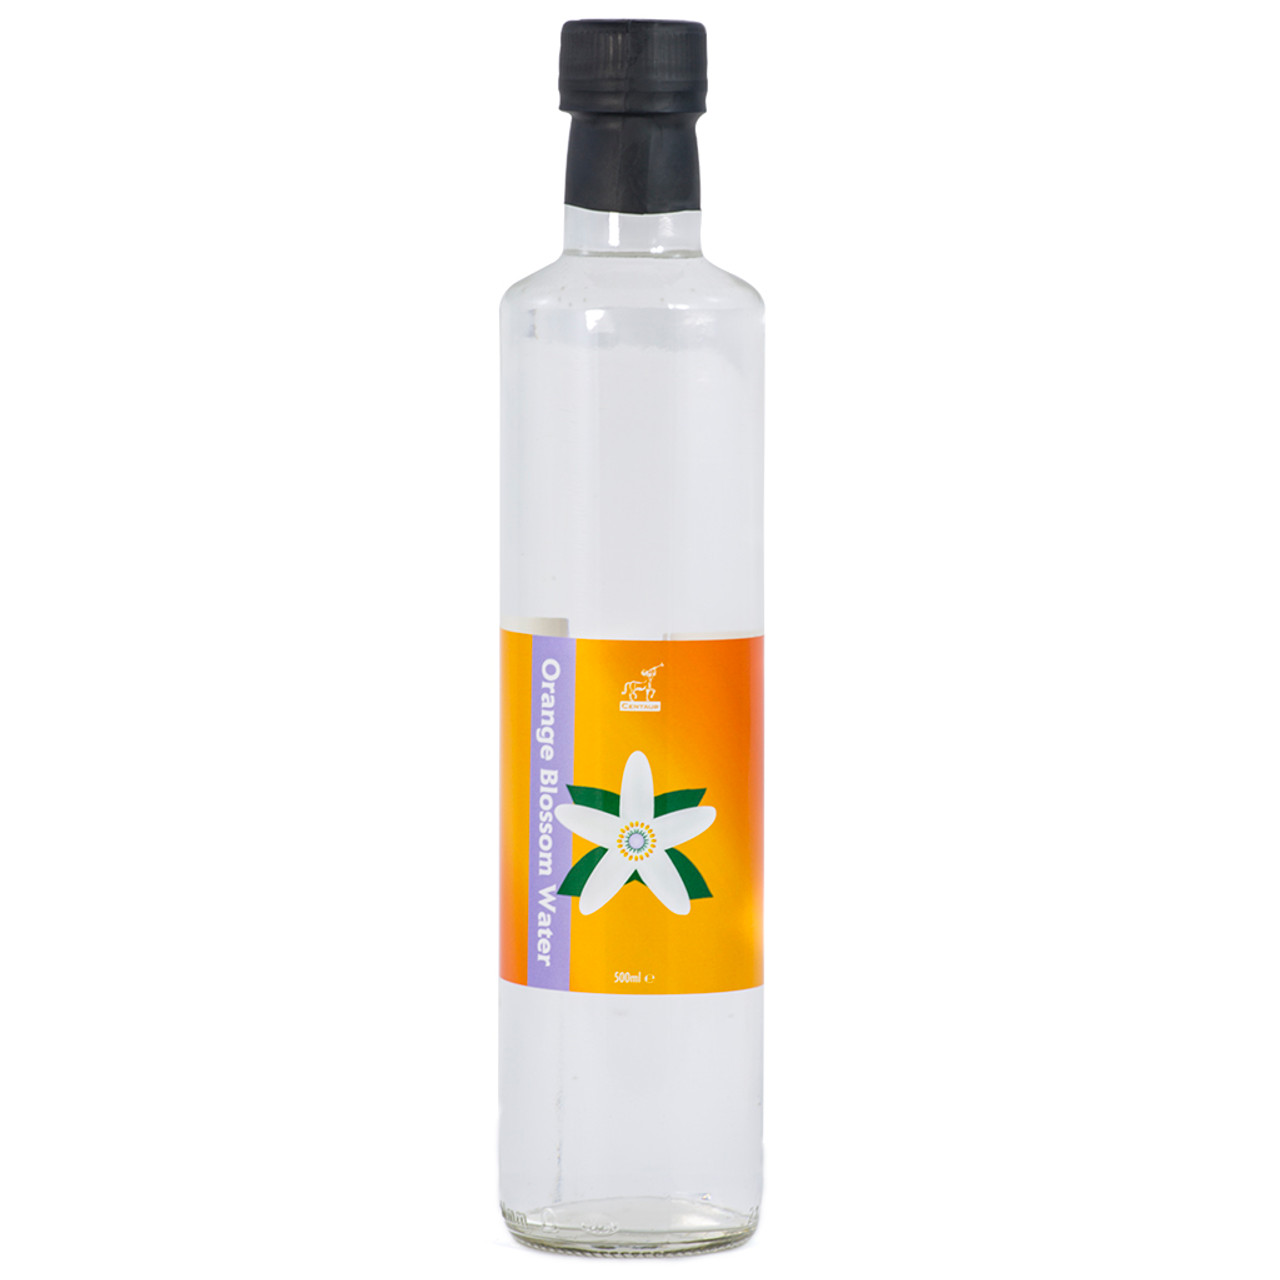 Flower Water Orange Blossom 300ml